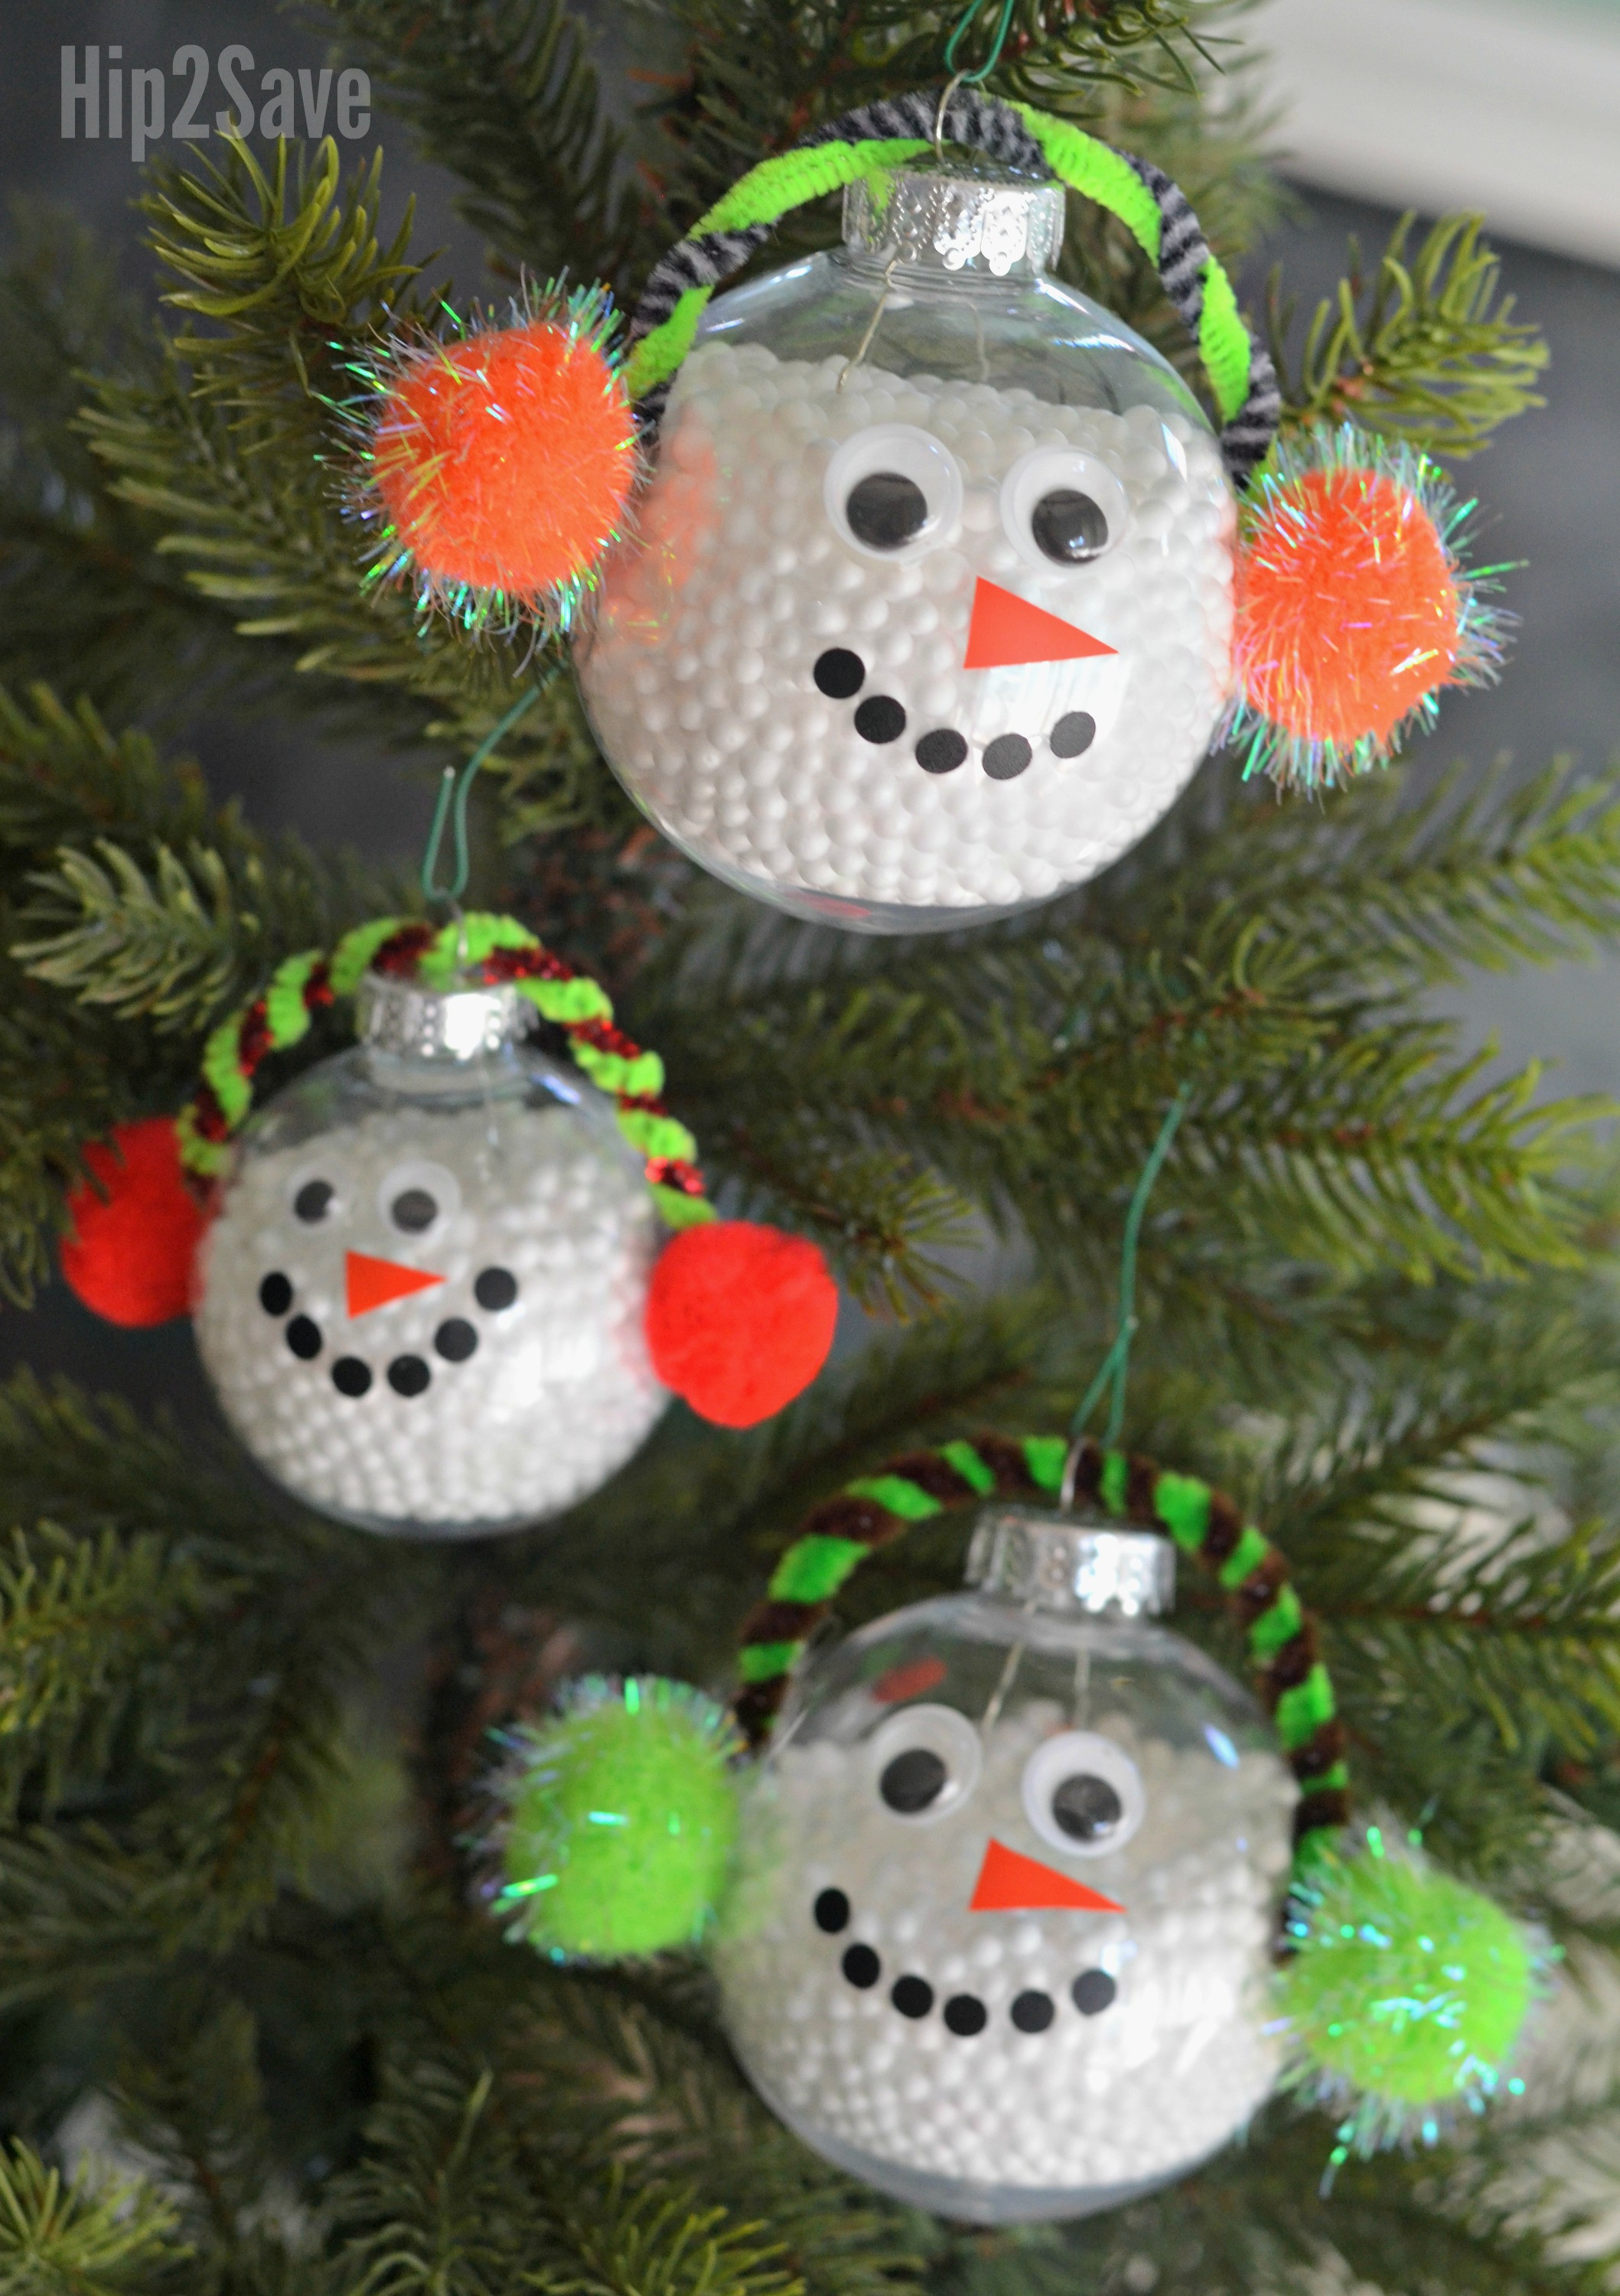 Best ideas about DIY Snowman Ornaments . Save or Pin DIY Simple Snowman Christmas Ornament Hip2Save Now.